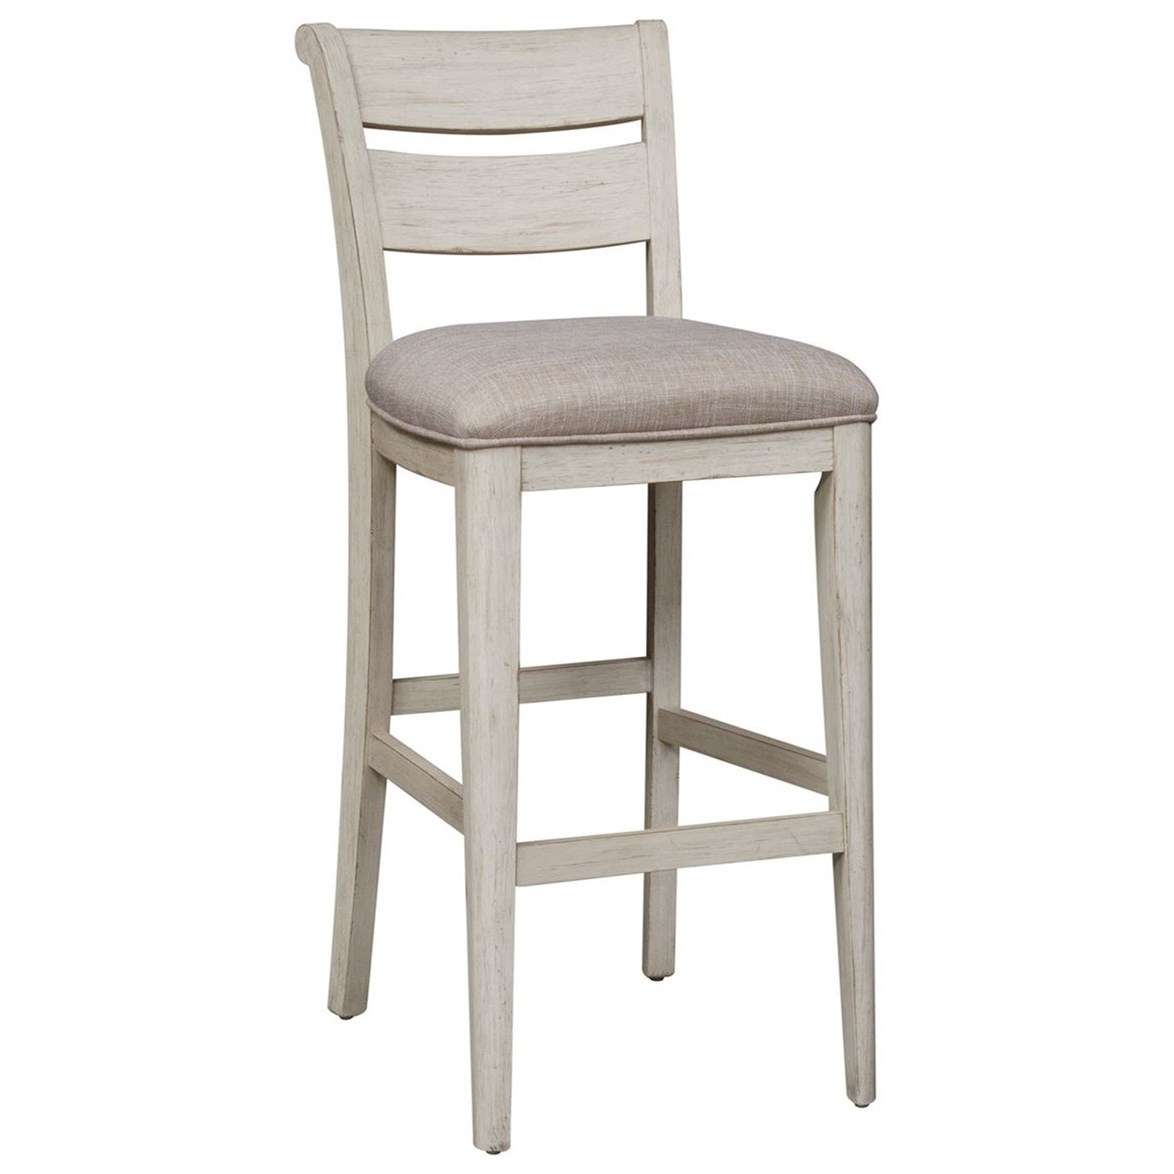 Ladder Back Upholstered Bar Stool